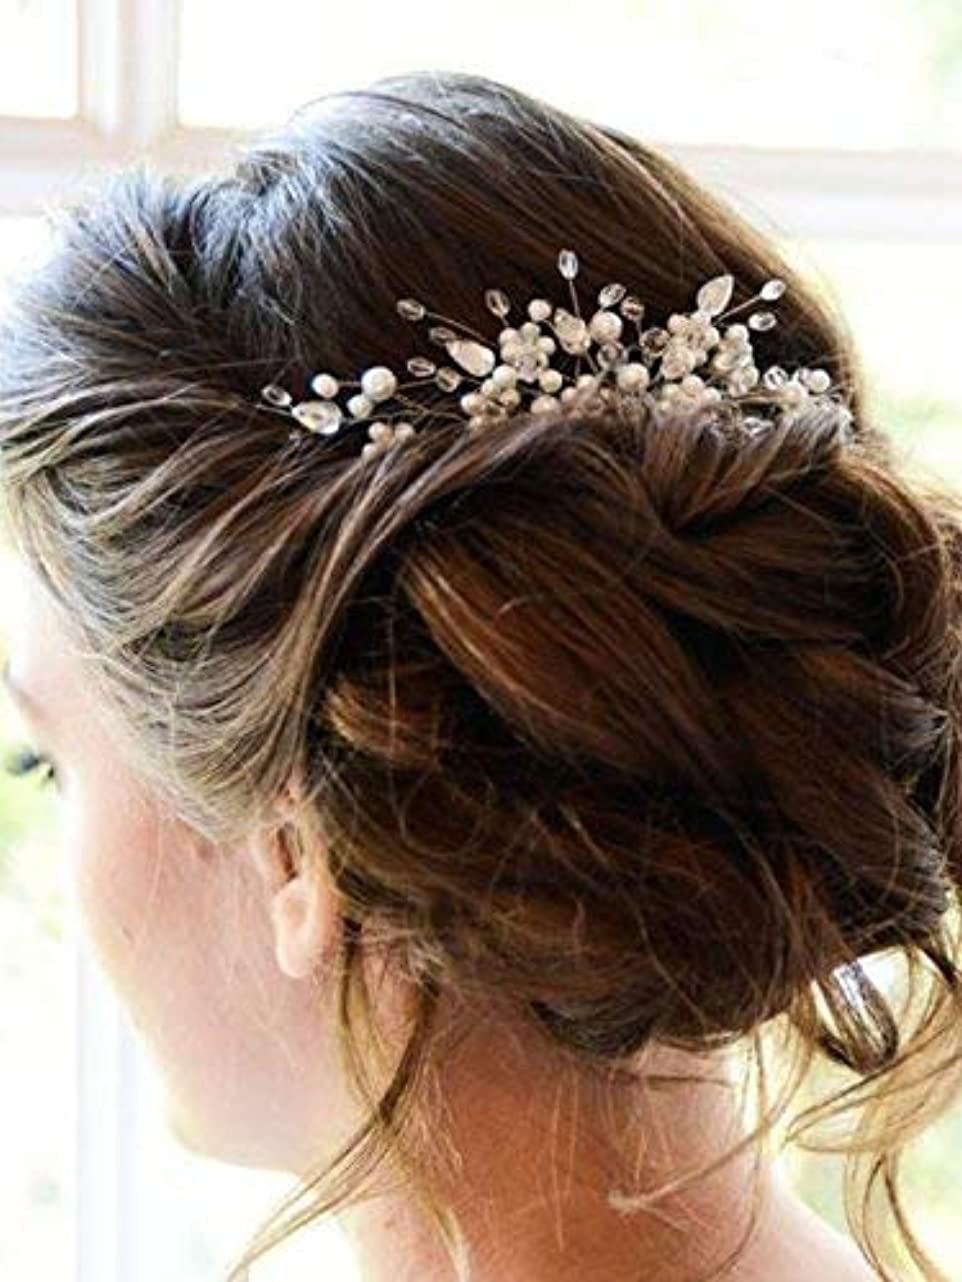 債権者ナット手数料Missgrace Bridal Vintage Hair Comb Bridal Headpiece Bridal Hair Piece Wedding Hair Piece Wedding Headpiece Wedding...